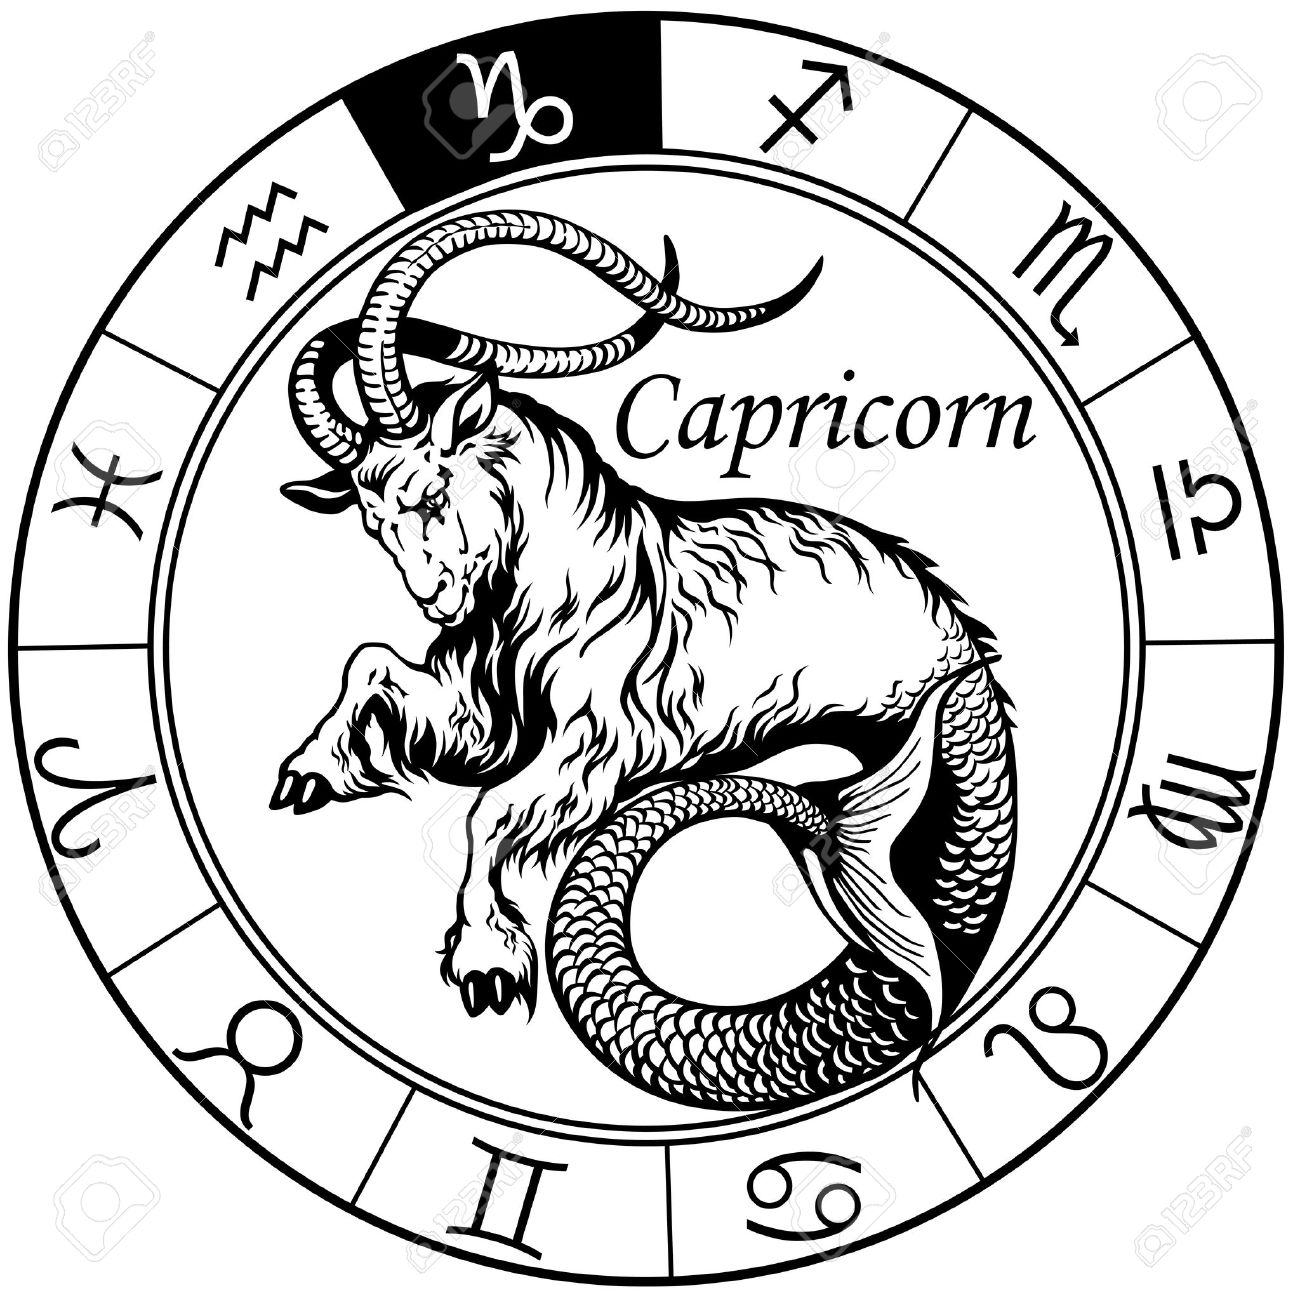 50 best capricorn tattoo designs with meanings for men women. Black Bedroom Furniture Sets. Home Design Ideas